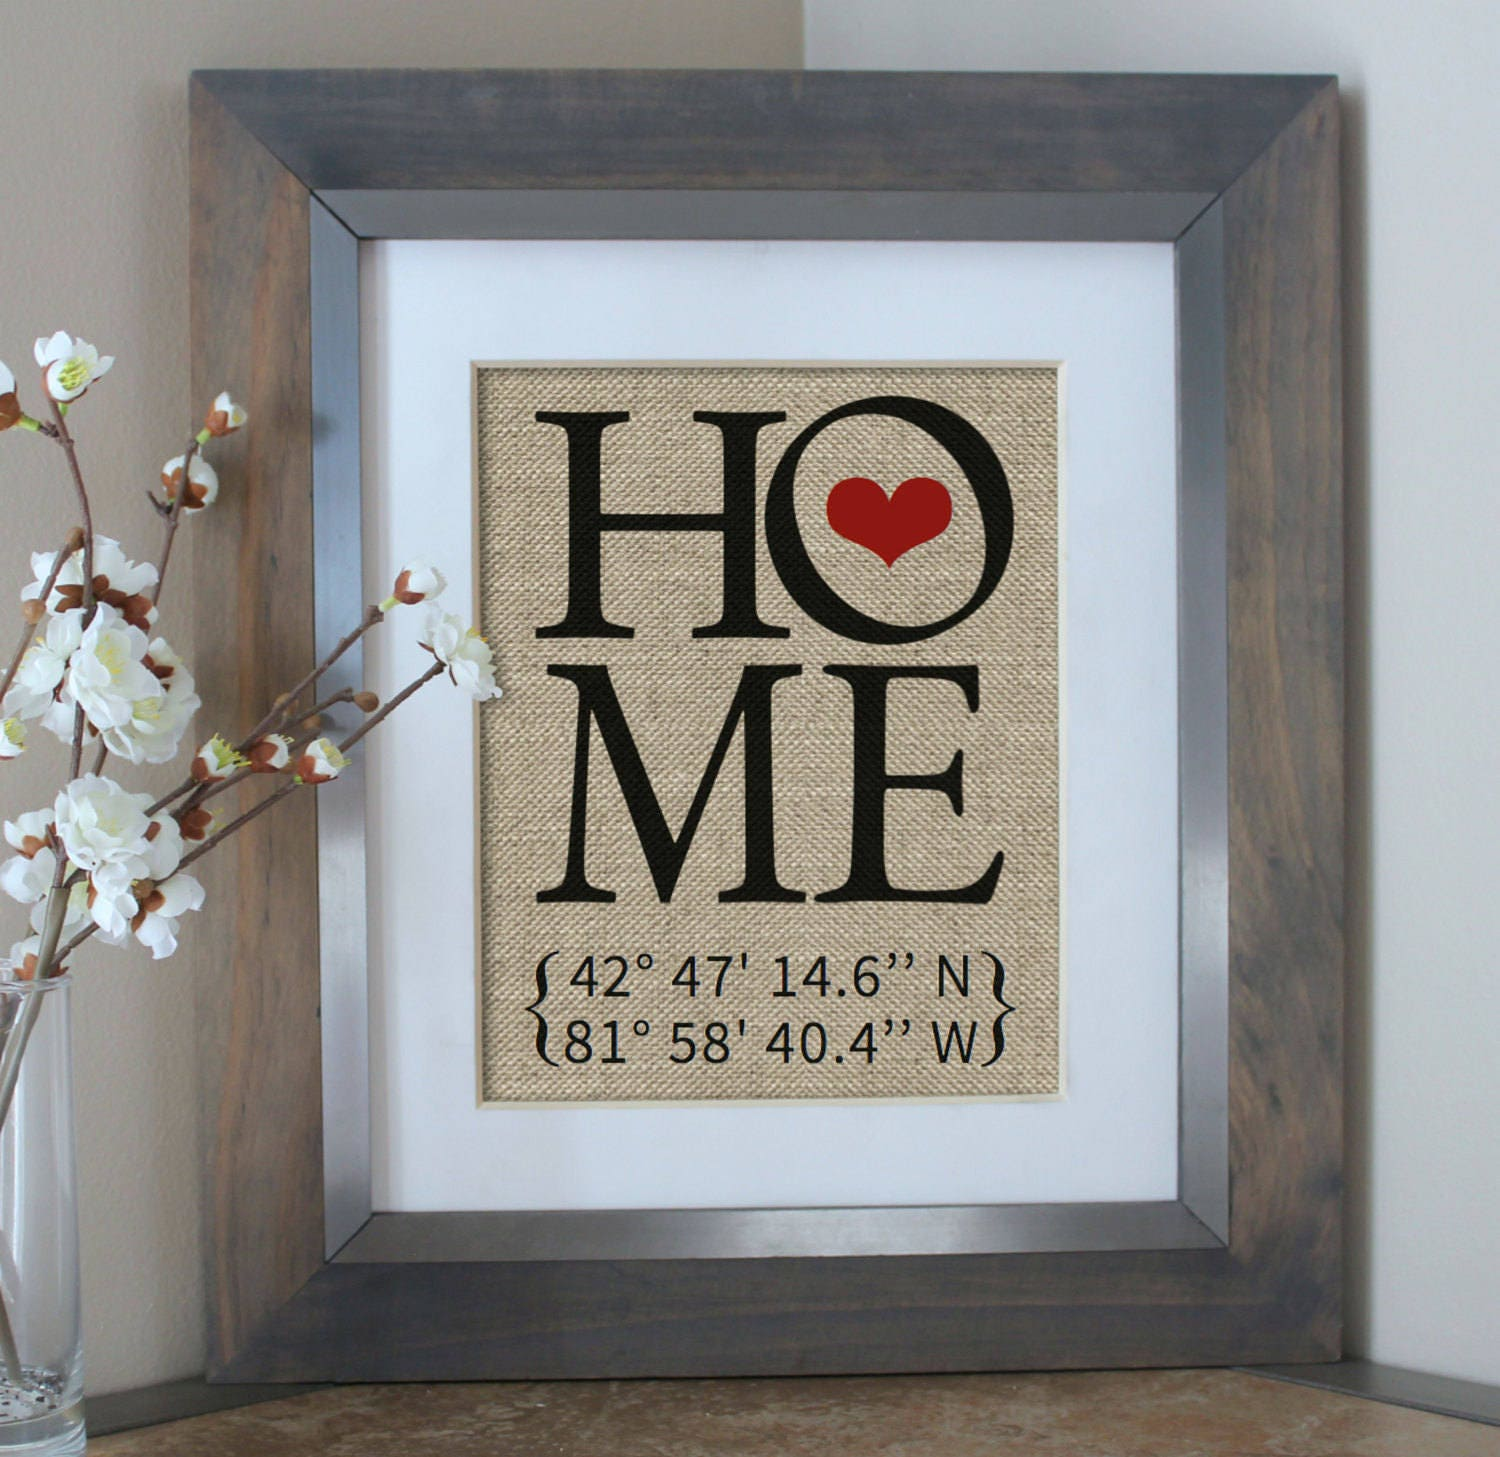 Our new home sign new home housewarming gift new home gift for New home sign